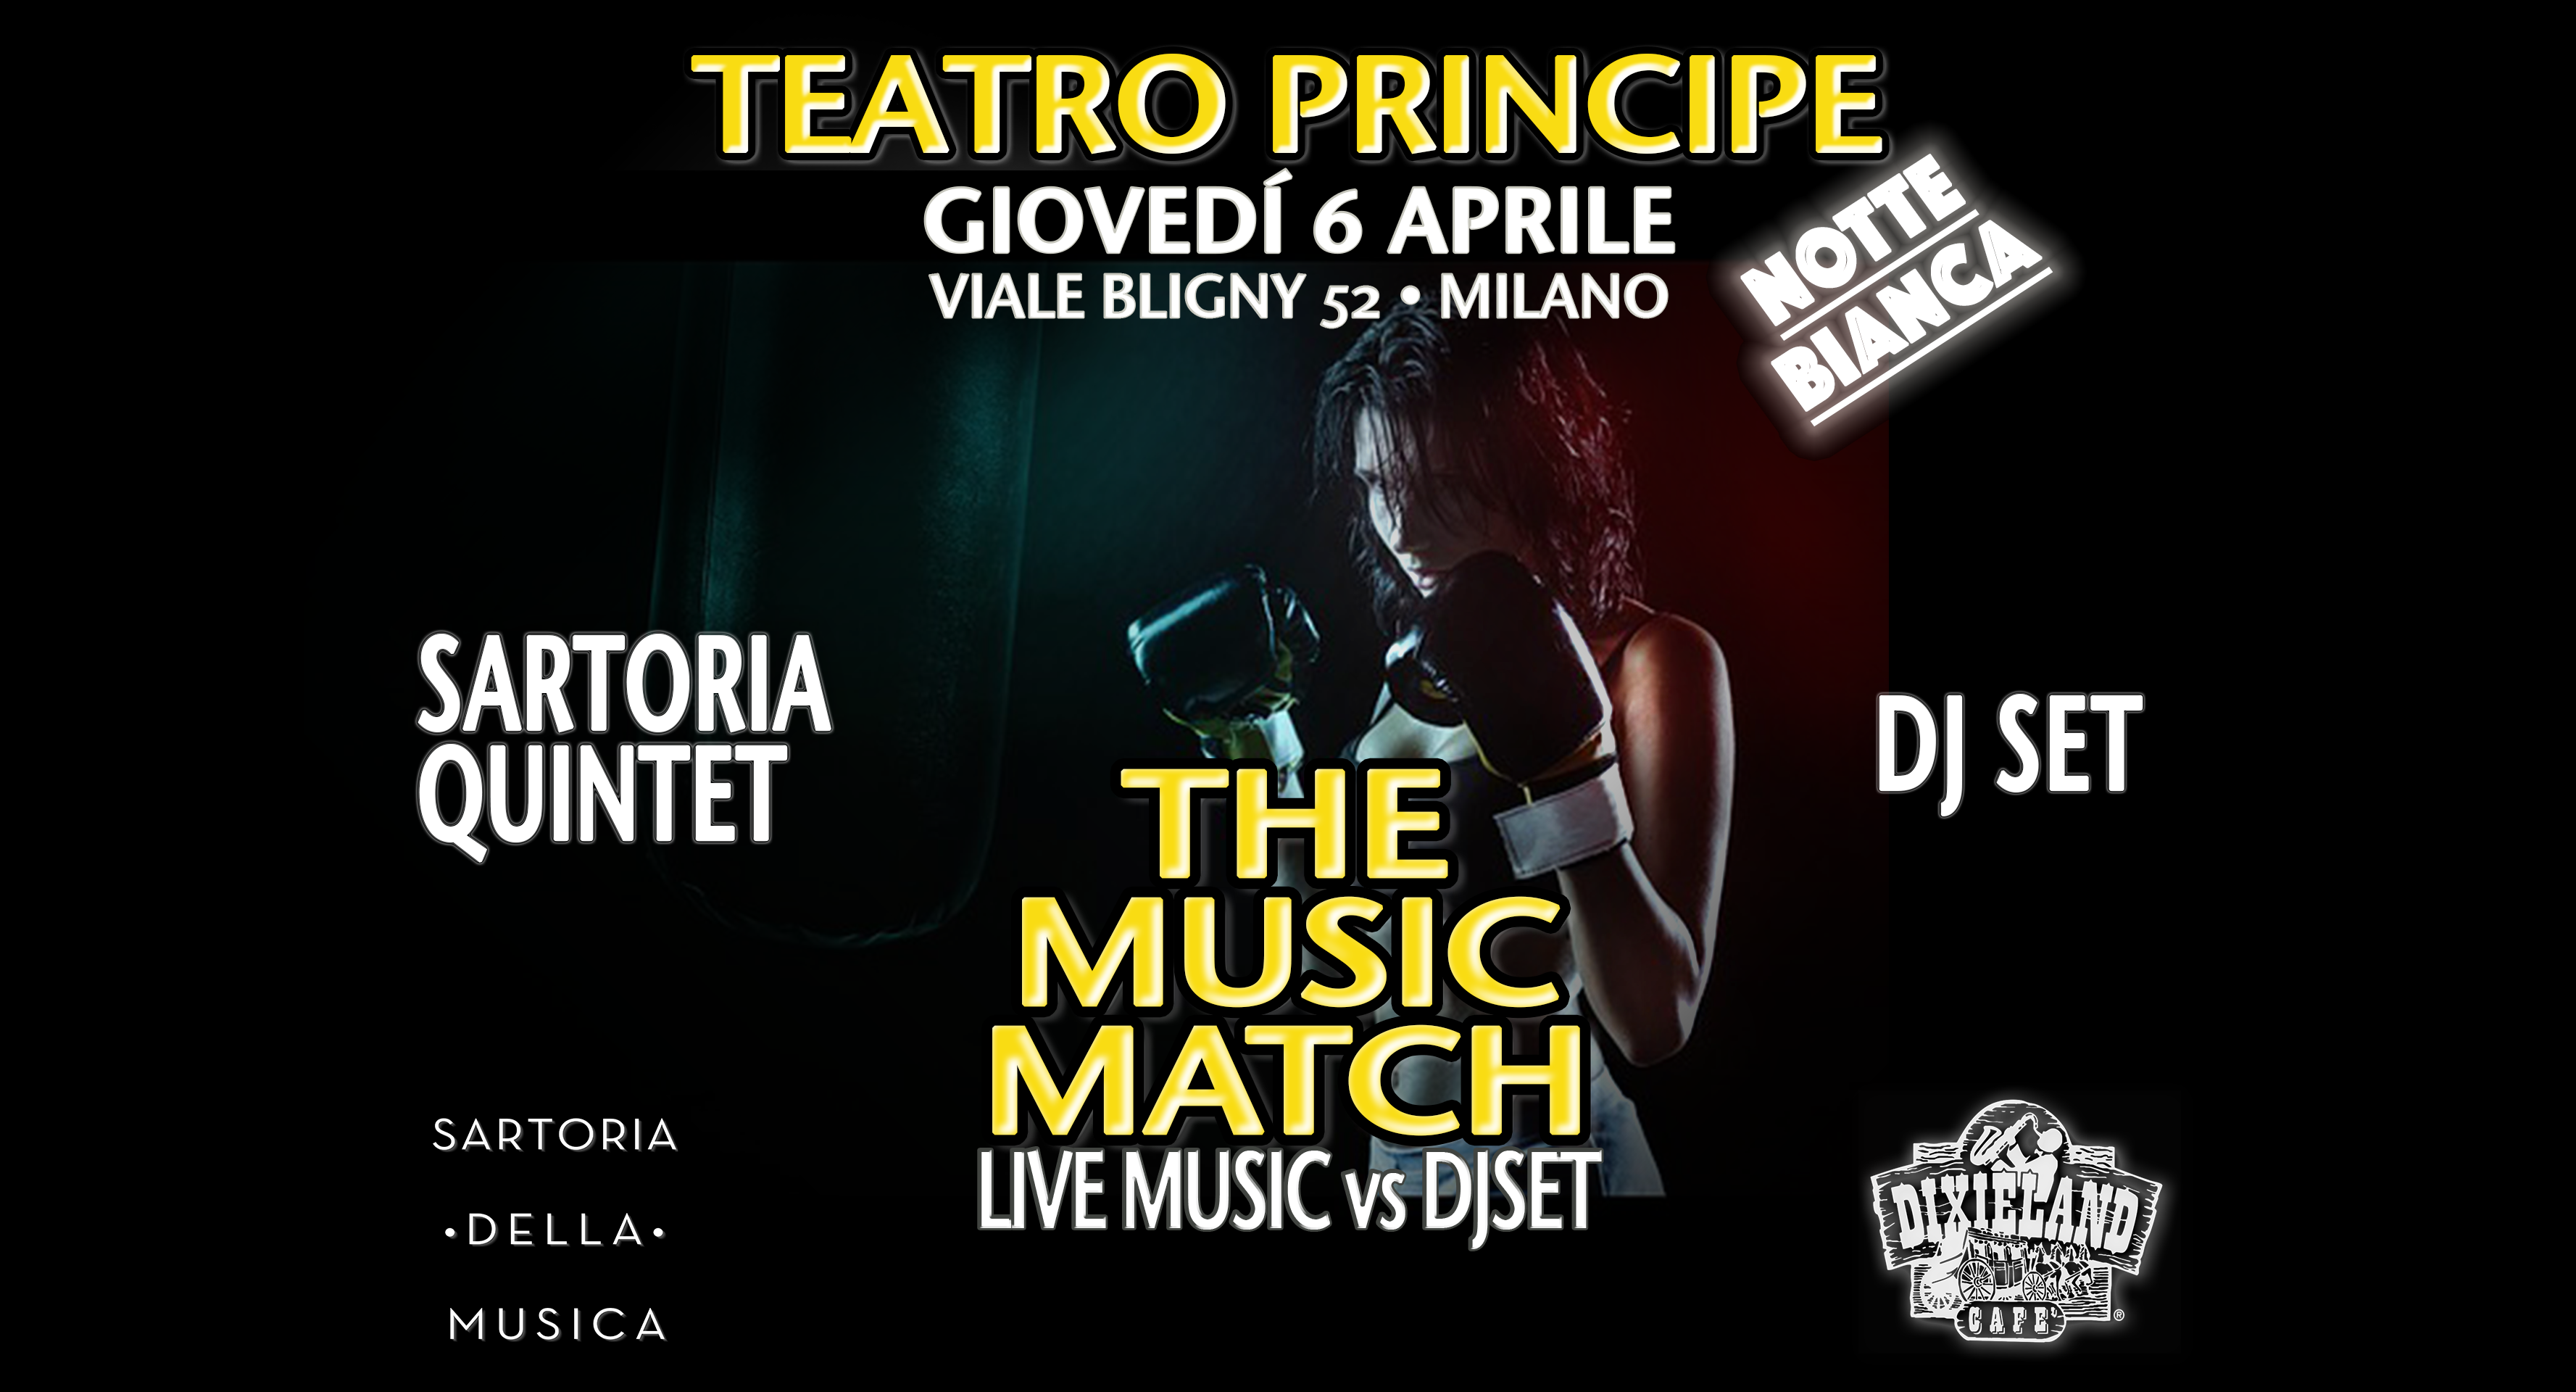 SAVE THE DATE – GIOVEDÌ 6 APRILE